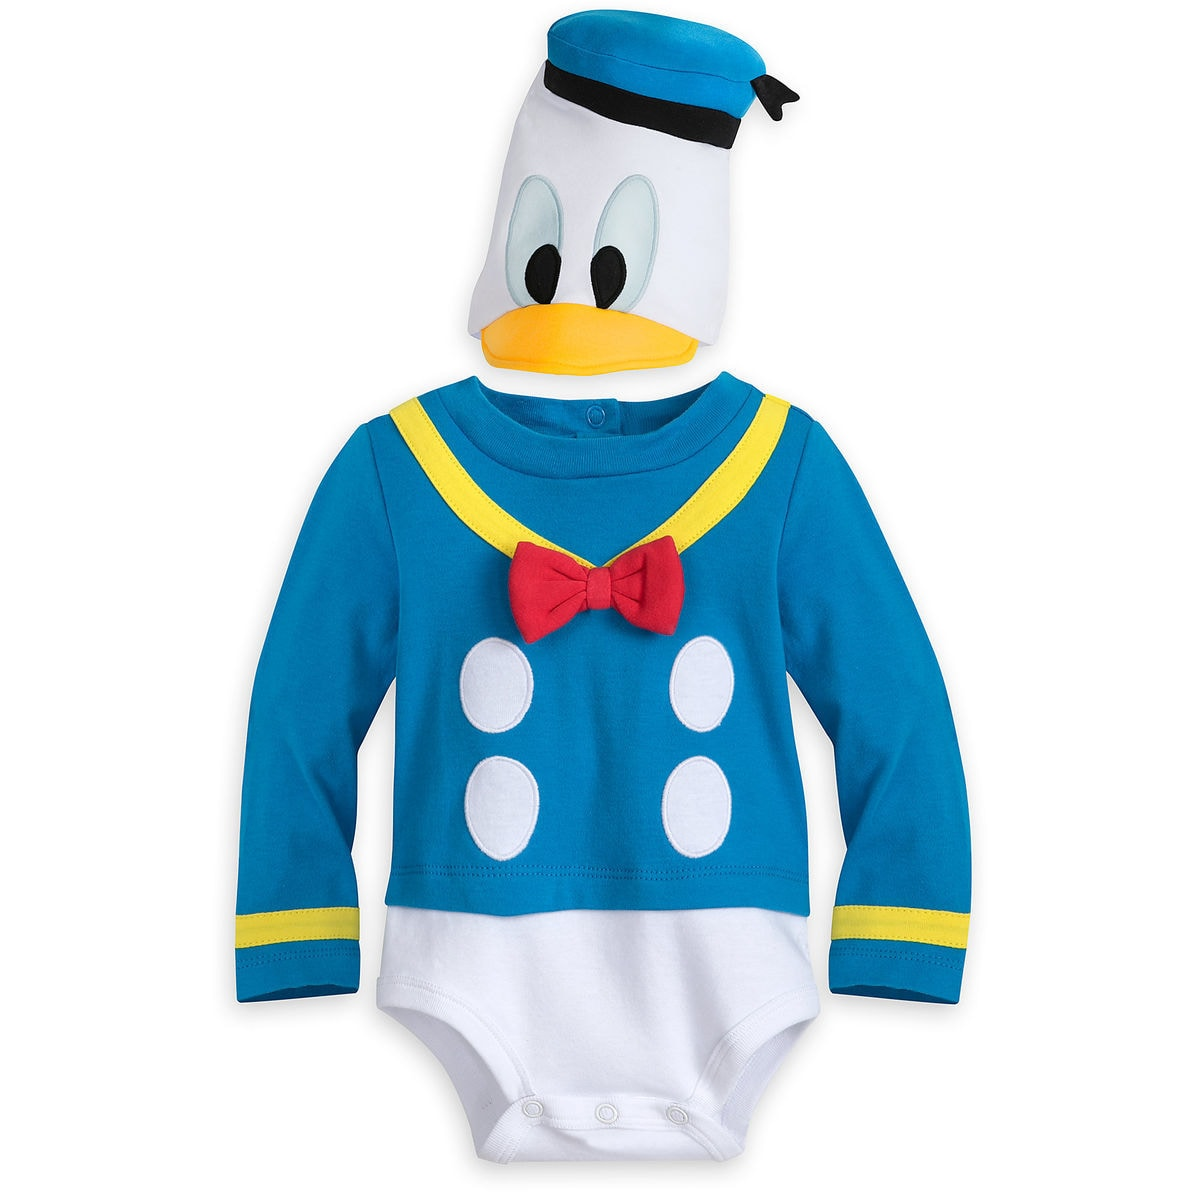 donald duck costume bodysuit for baby shopdisney